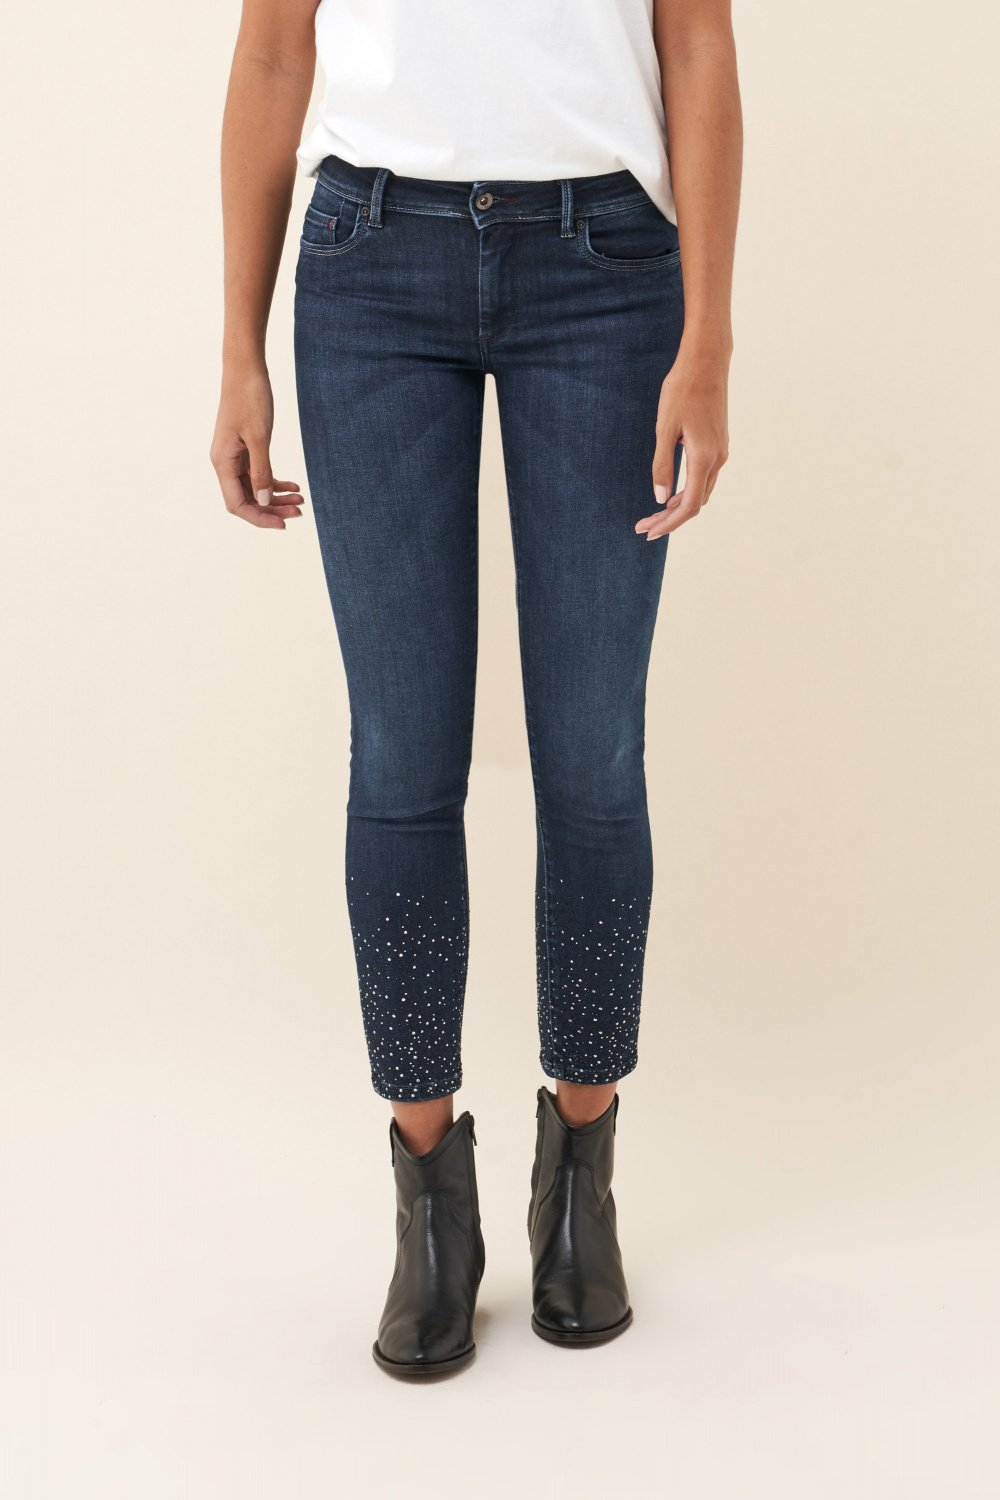 Push Up Wonder capri jeans with sparkle on hem and leg - Salsa